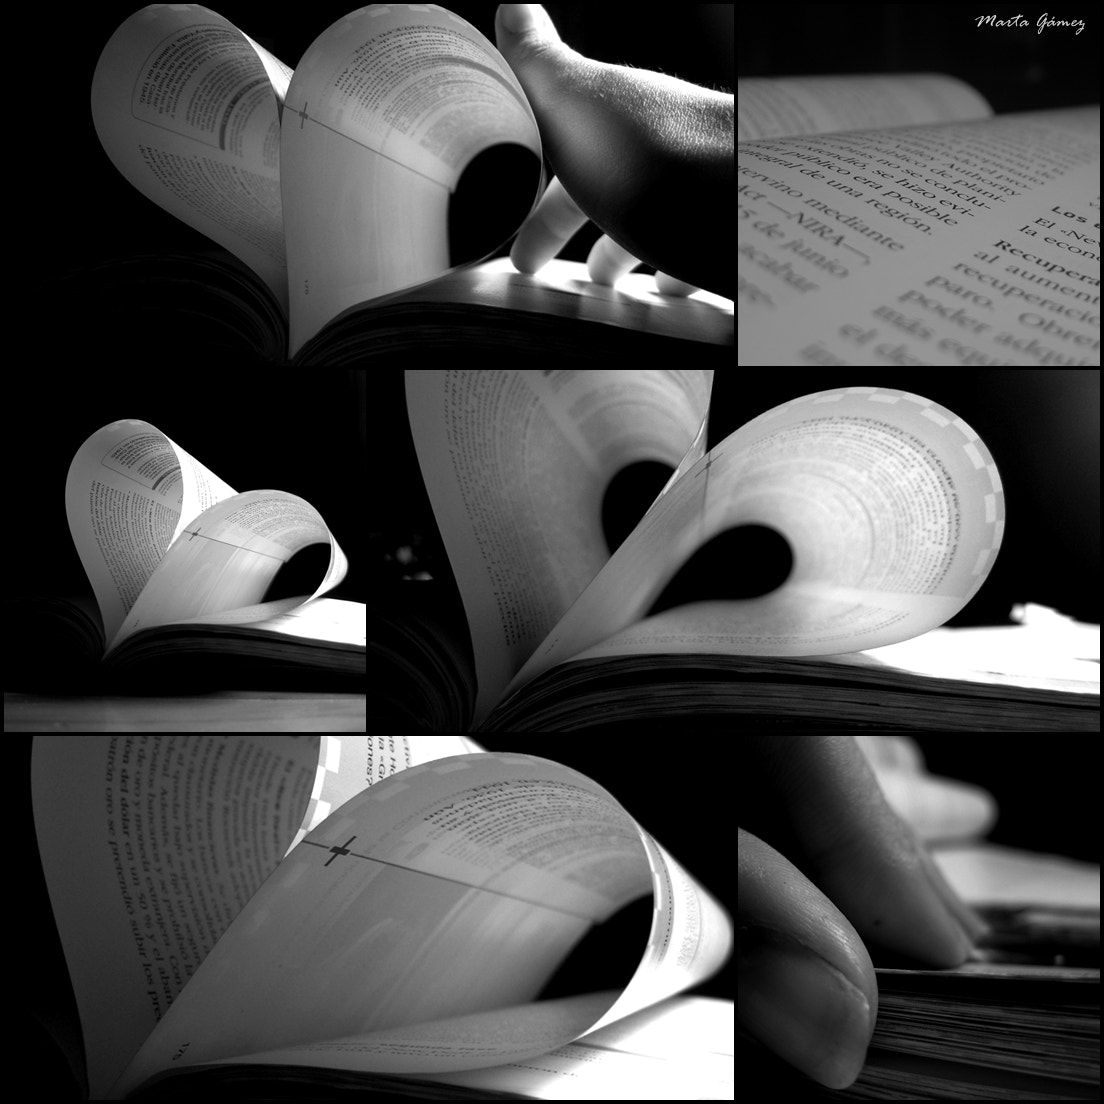 Photograph Love Letters  by Marta Gámez Medina on 500px